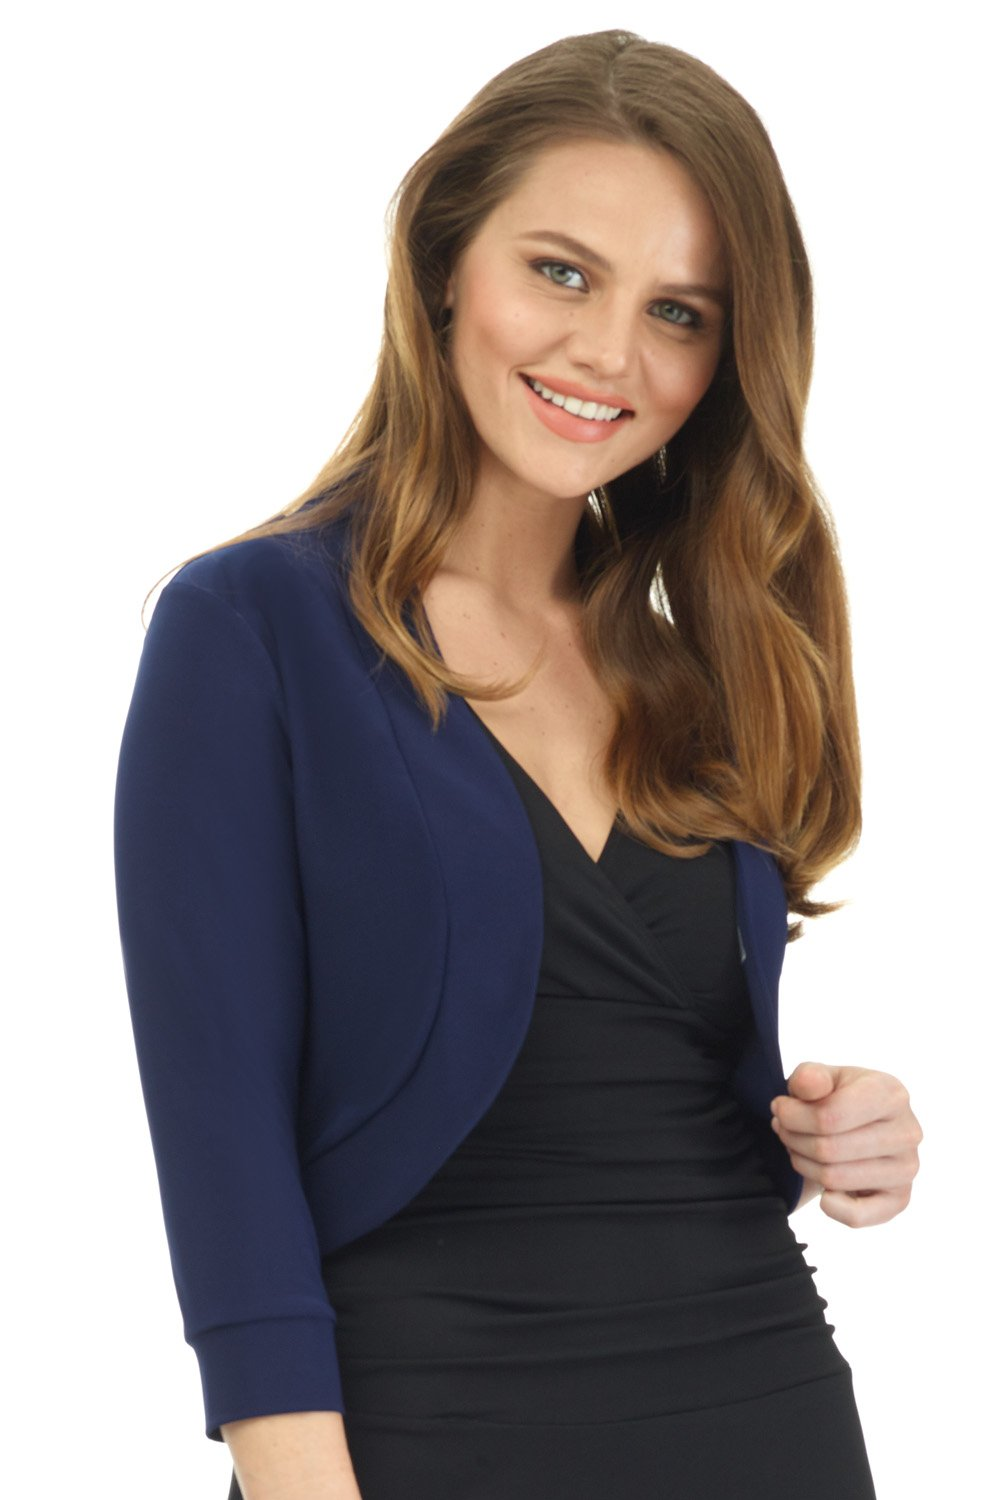 Rekucci Women's Soft Knit Rounded Hem Stretch Bolero Shrug (X-Small,Navy)